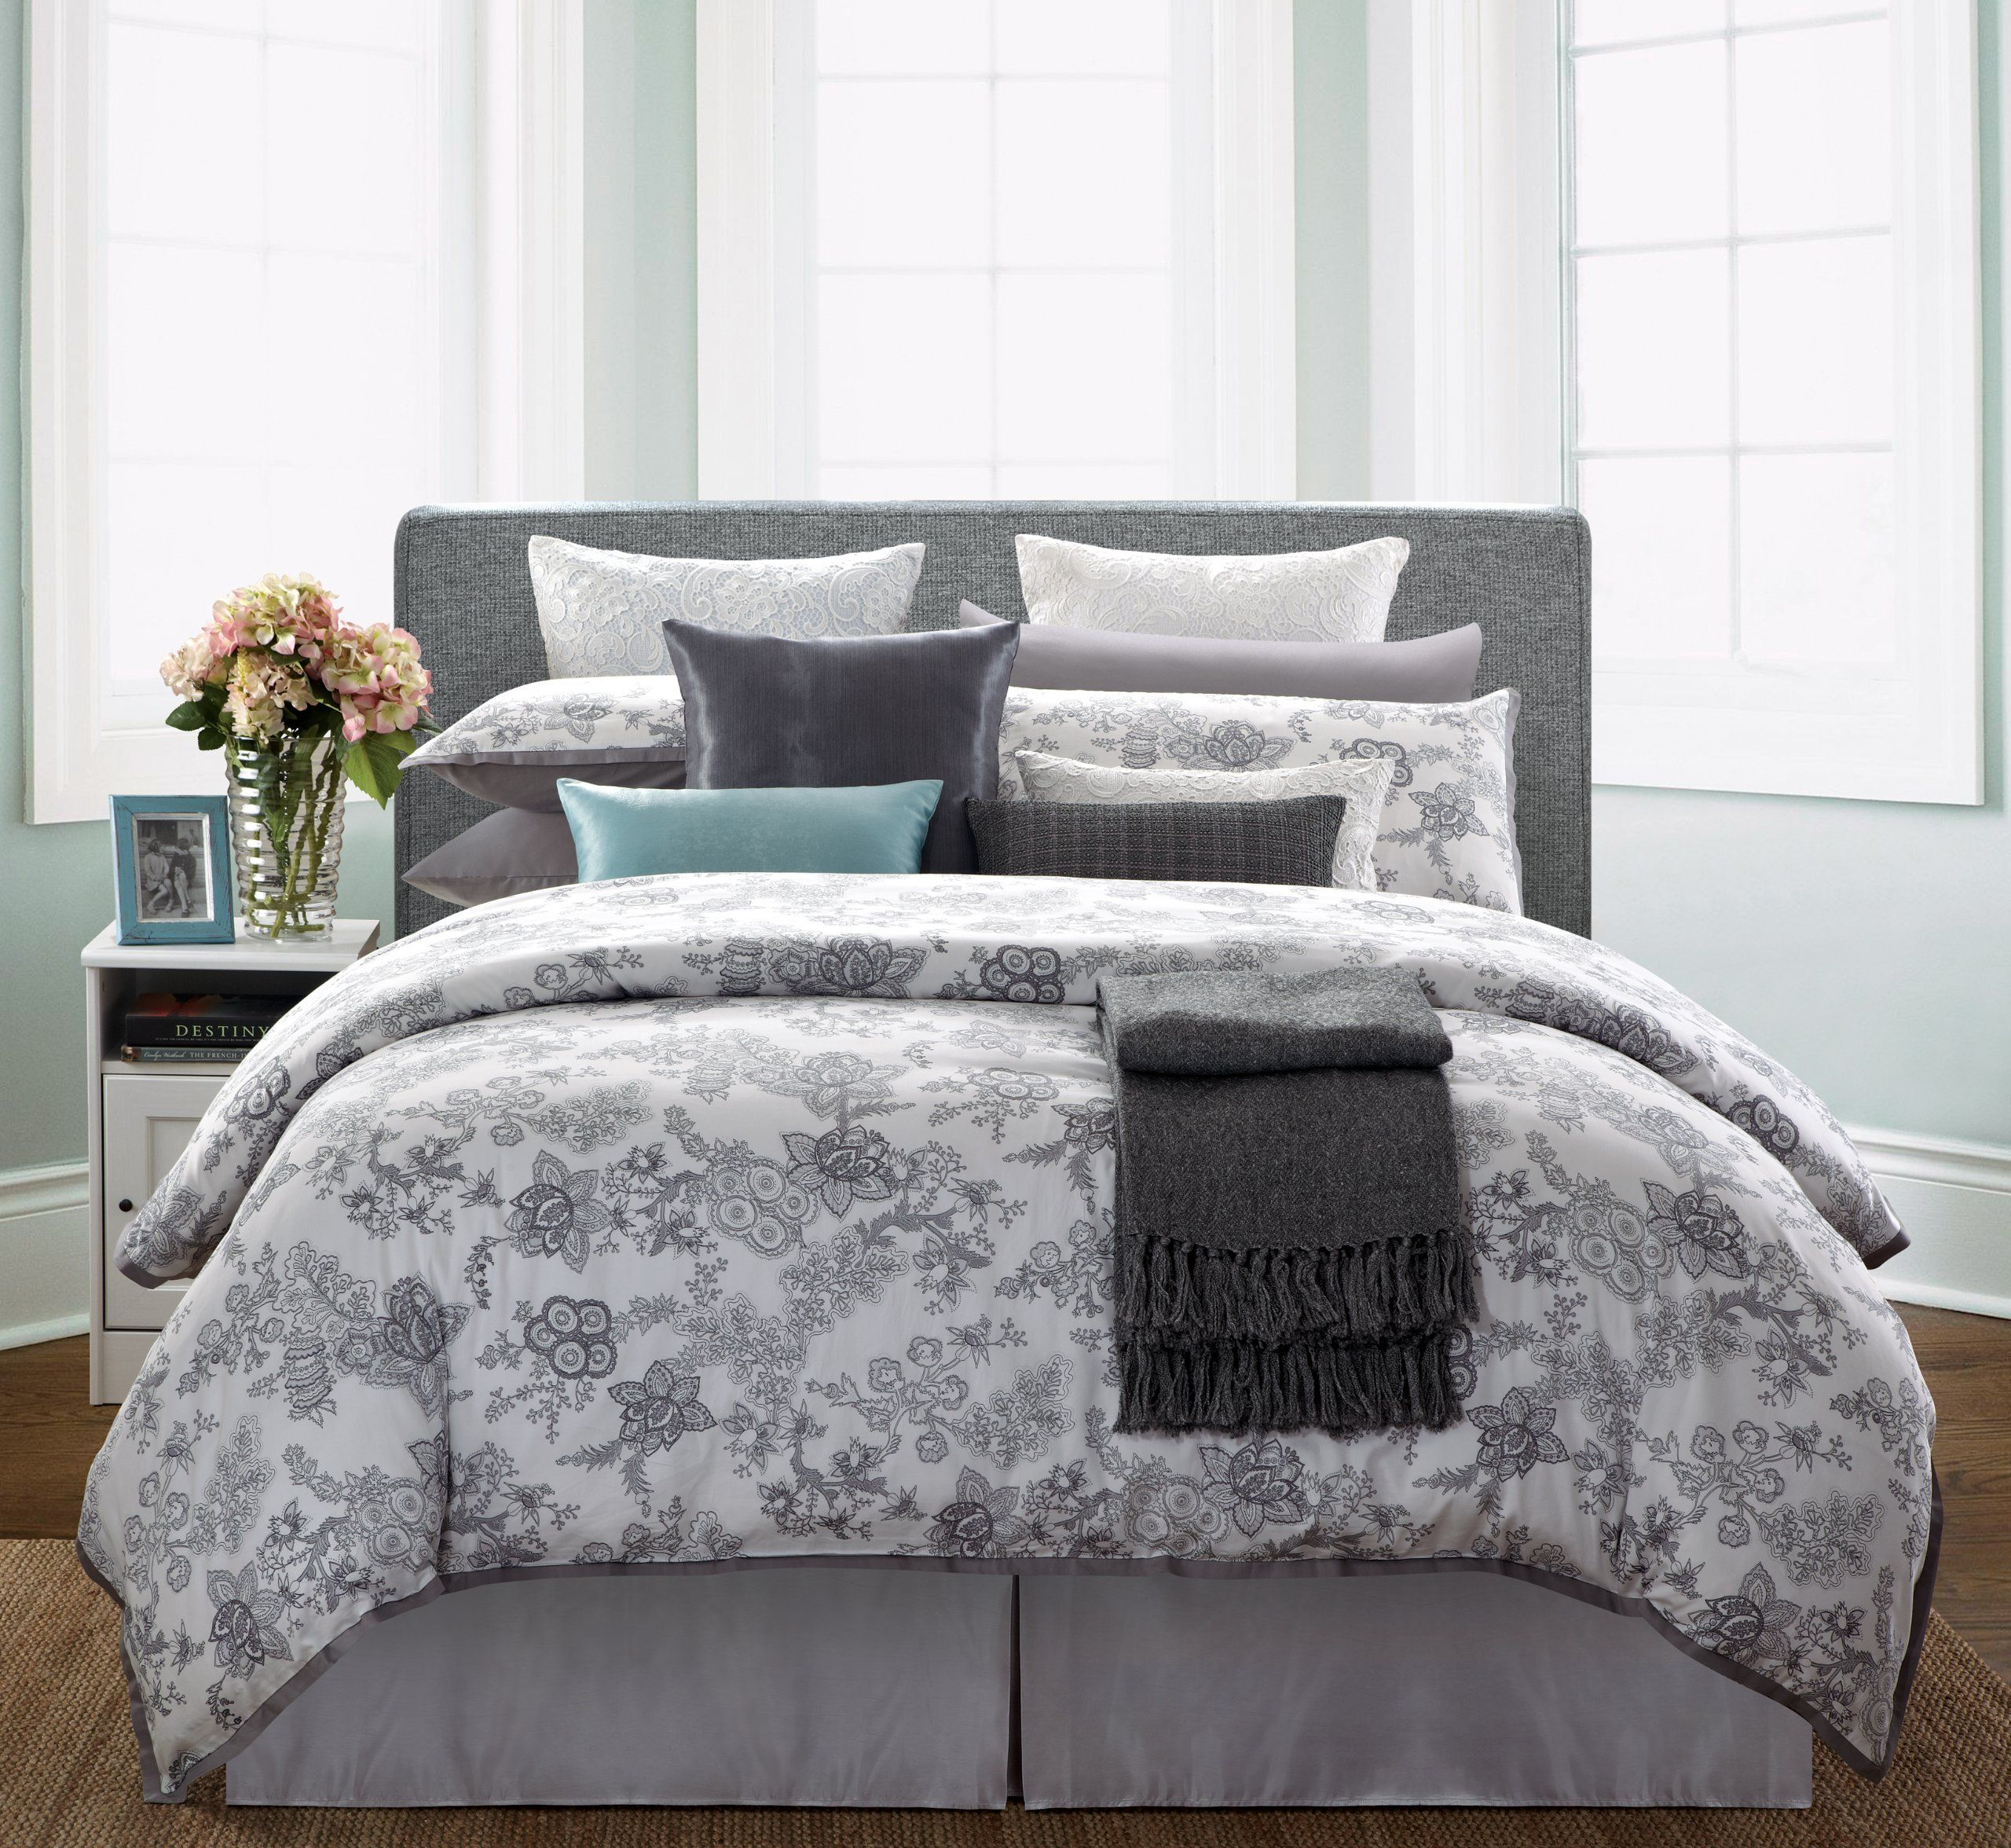 gray bed skirt. upholstered headboard, accent colors